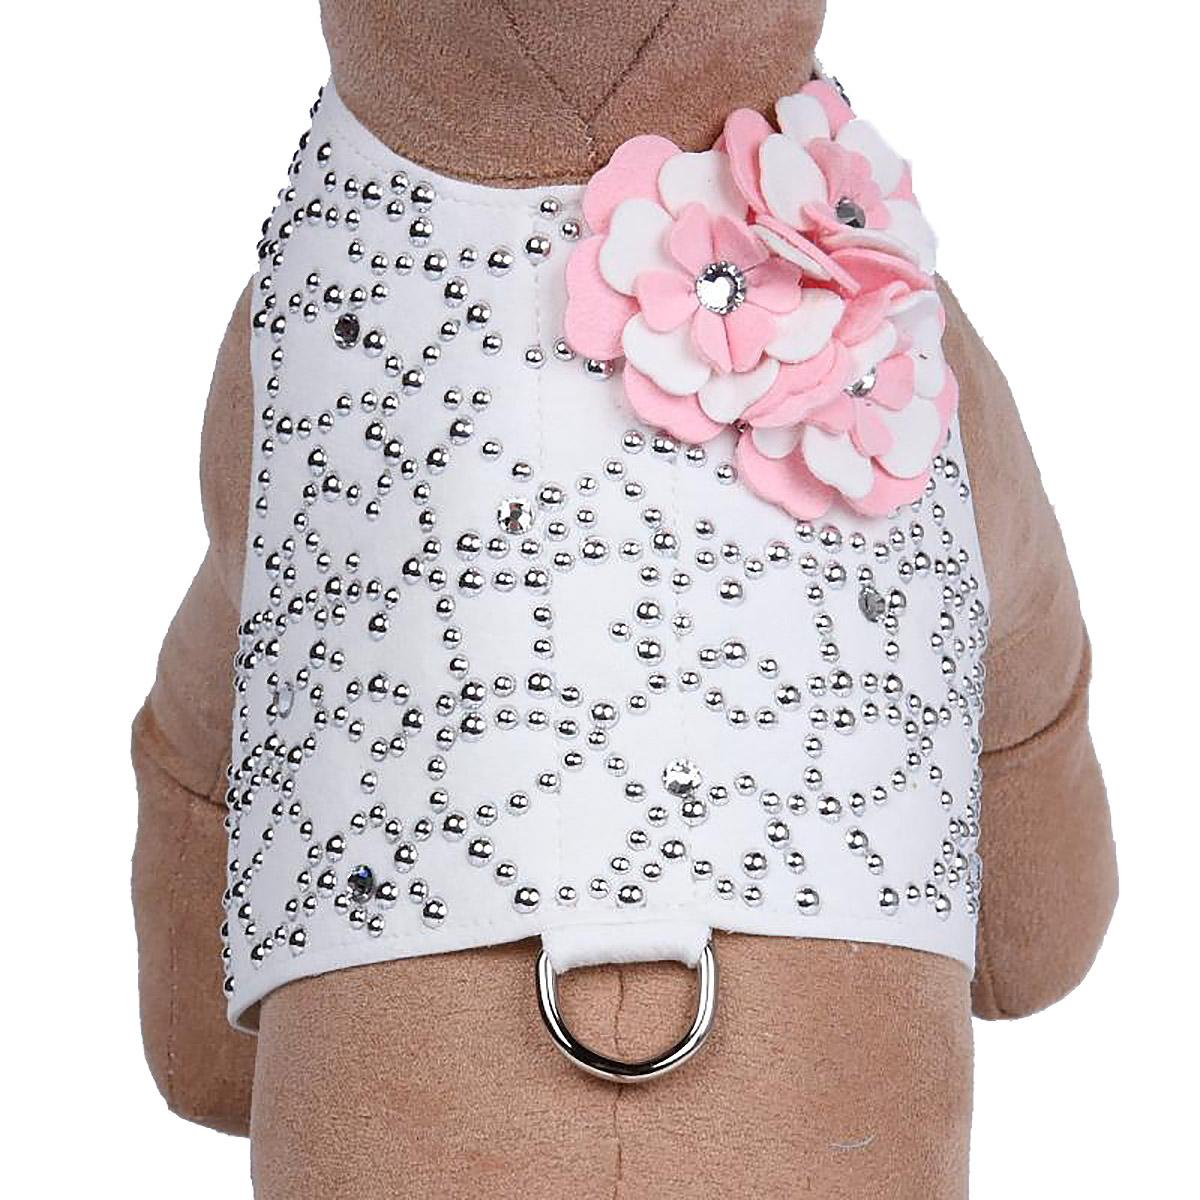 Special Occasion Bailey Dog Harness by Susan Lanci - White Charlotte's Web with Puppy Pink Flowers